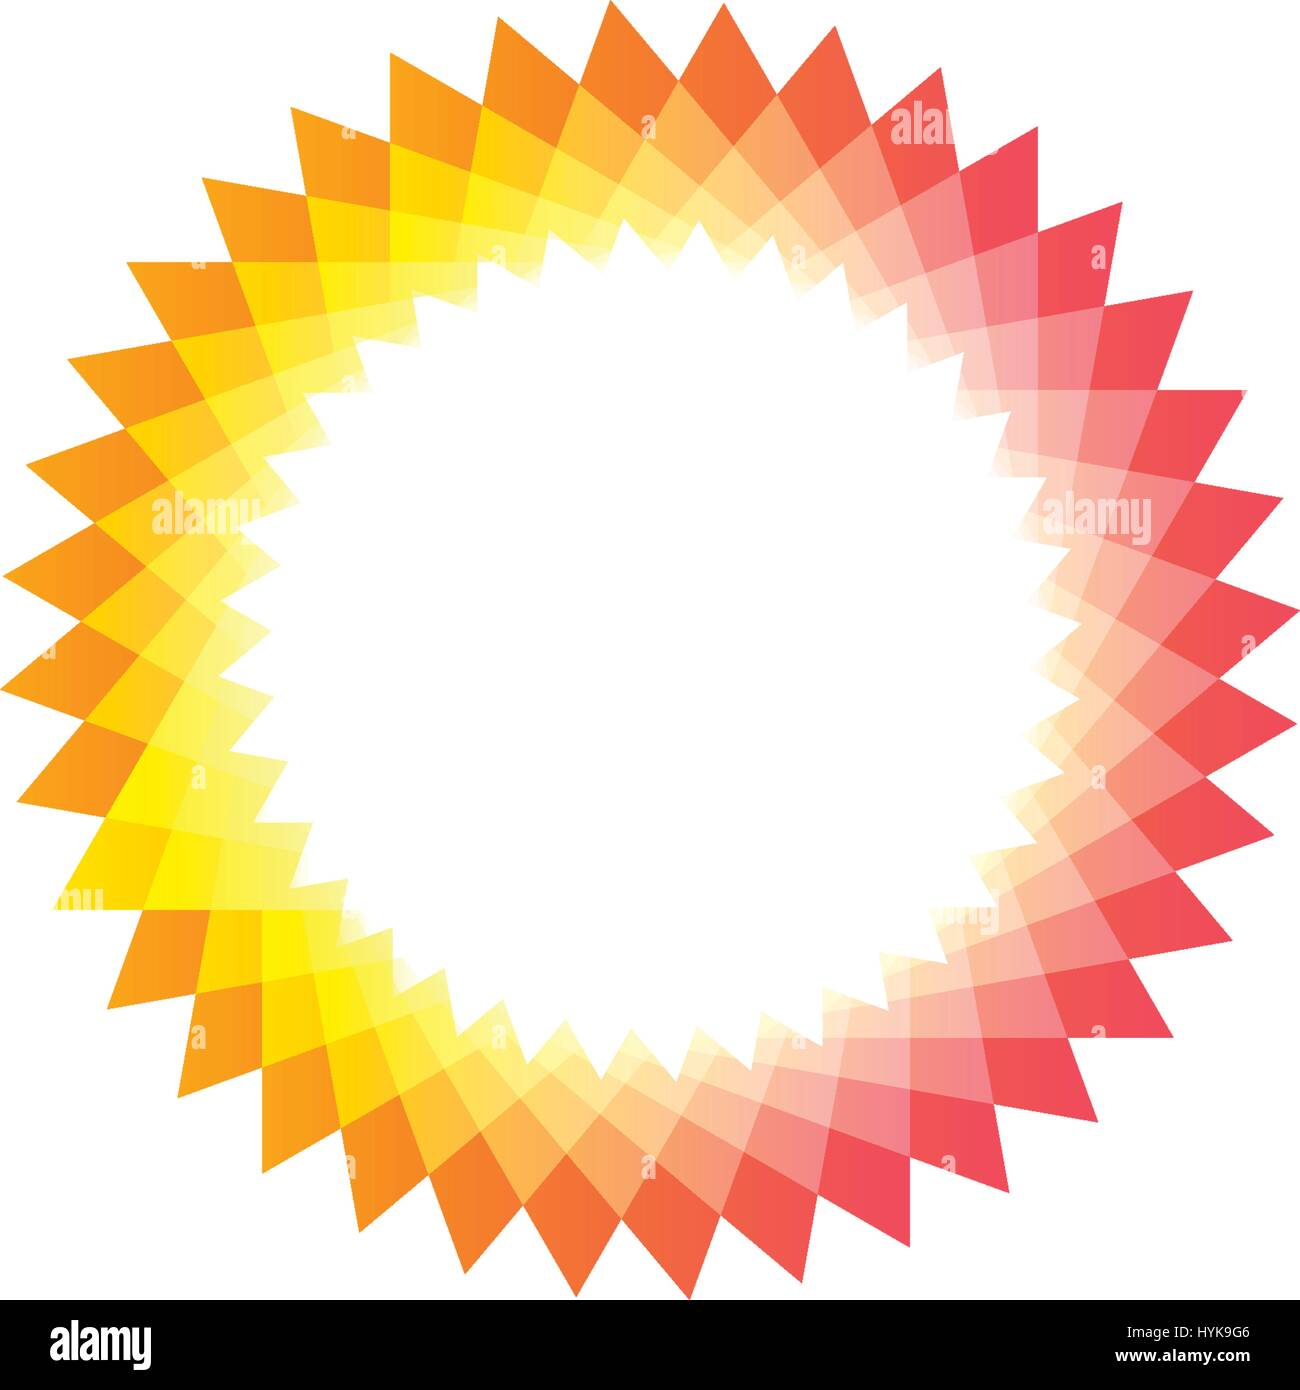 isolated pink and yellow color sun logotype abstract round shape